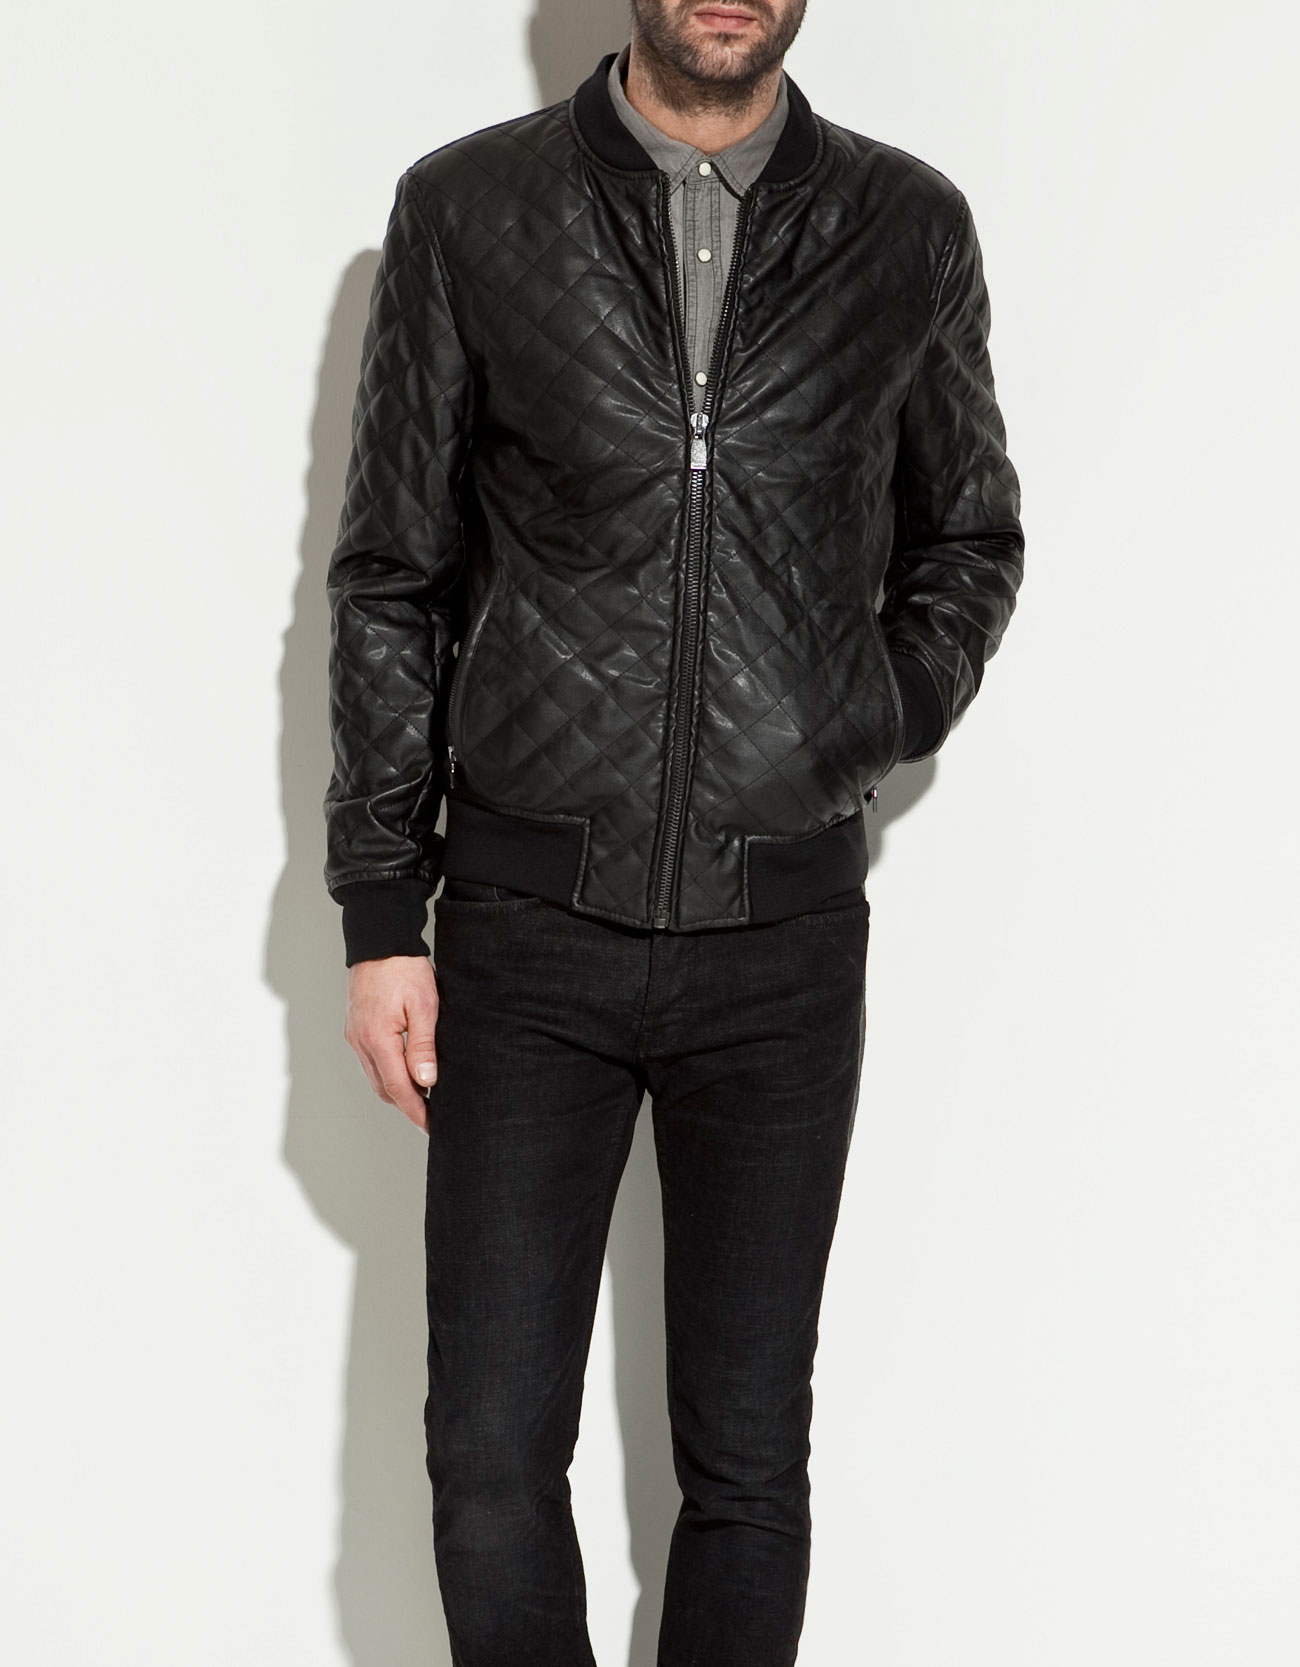 Zara mens leather jackets